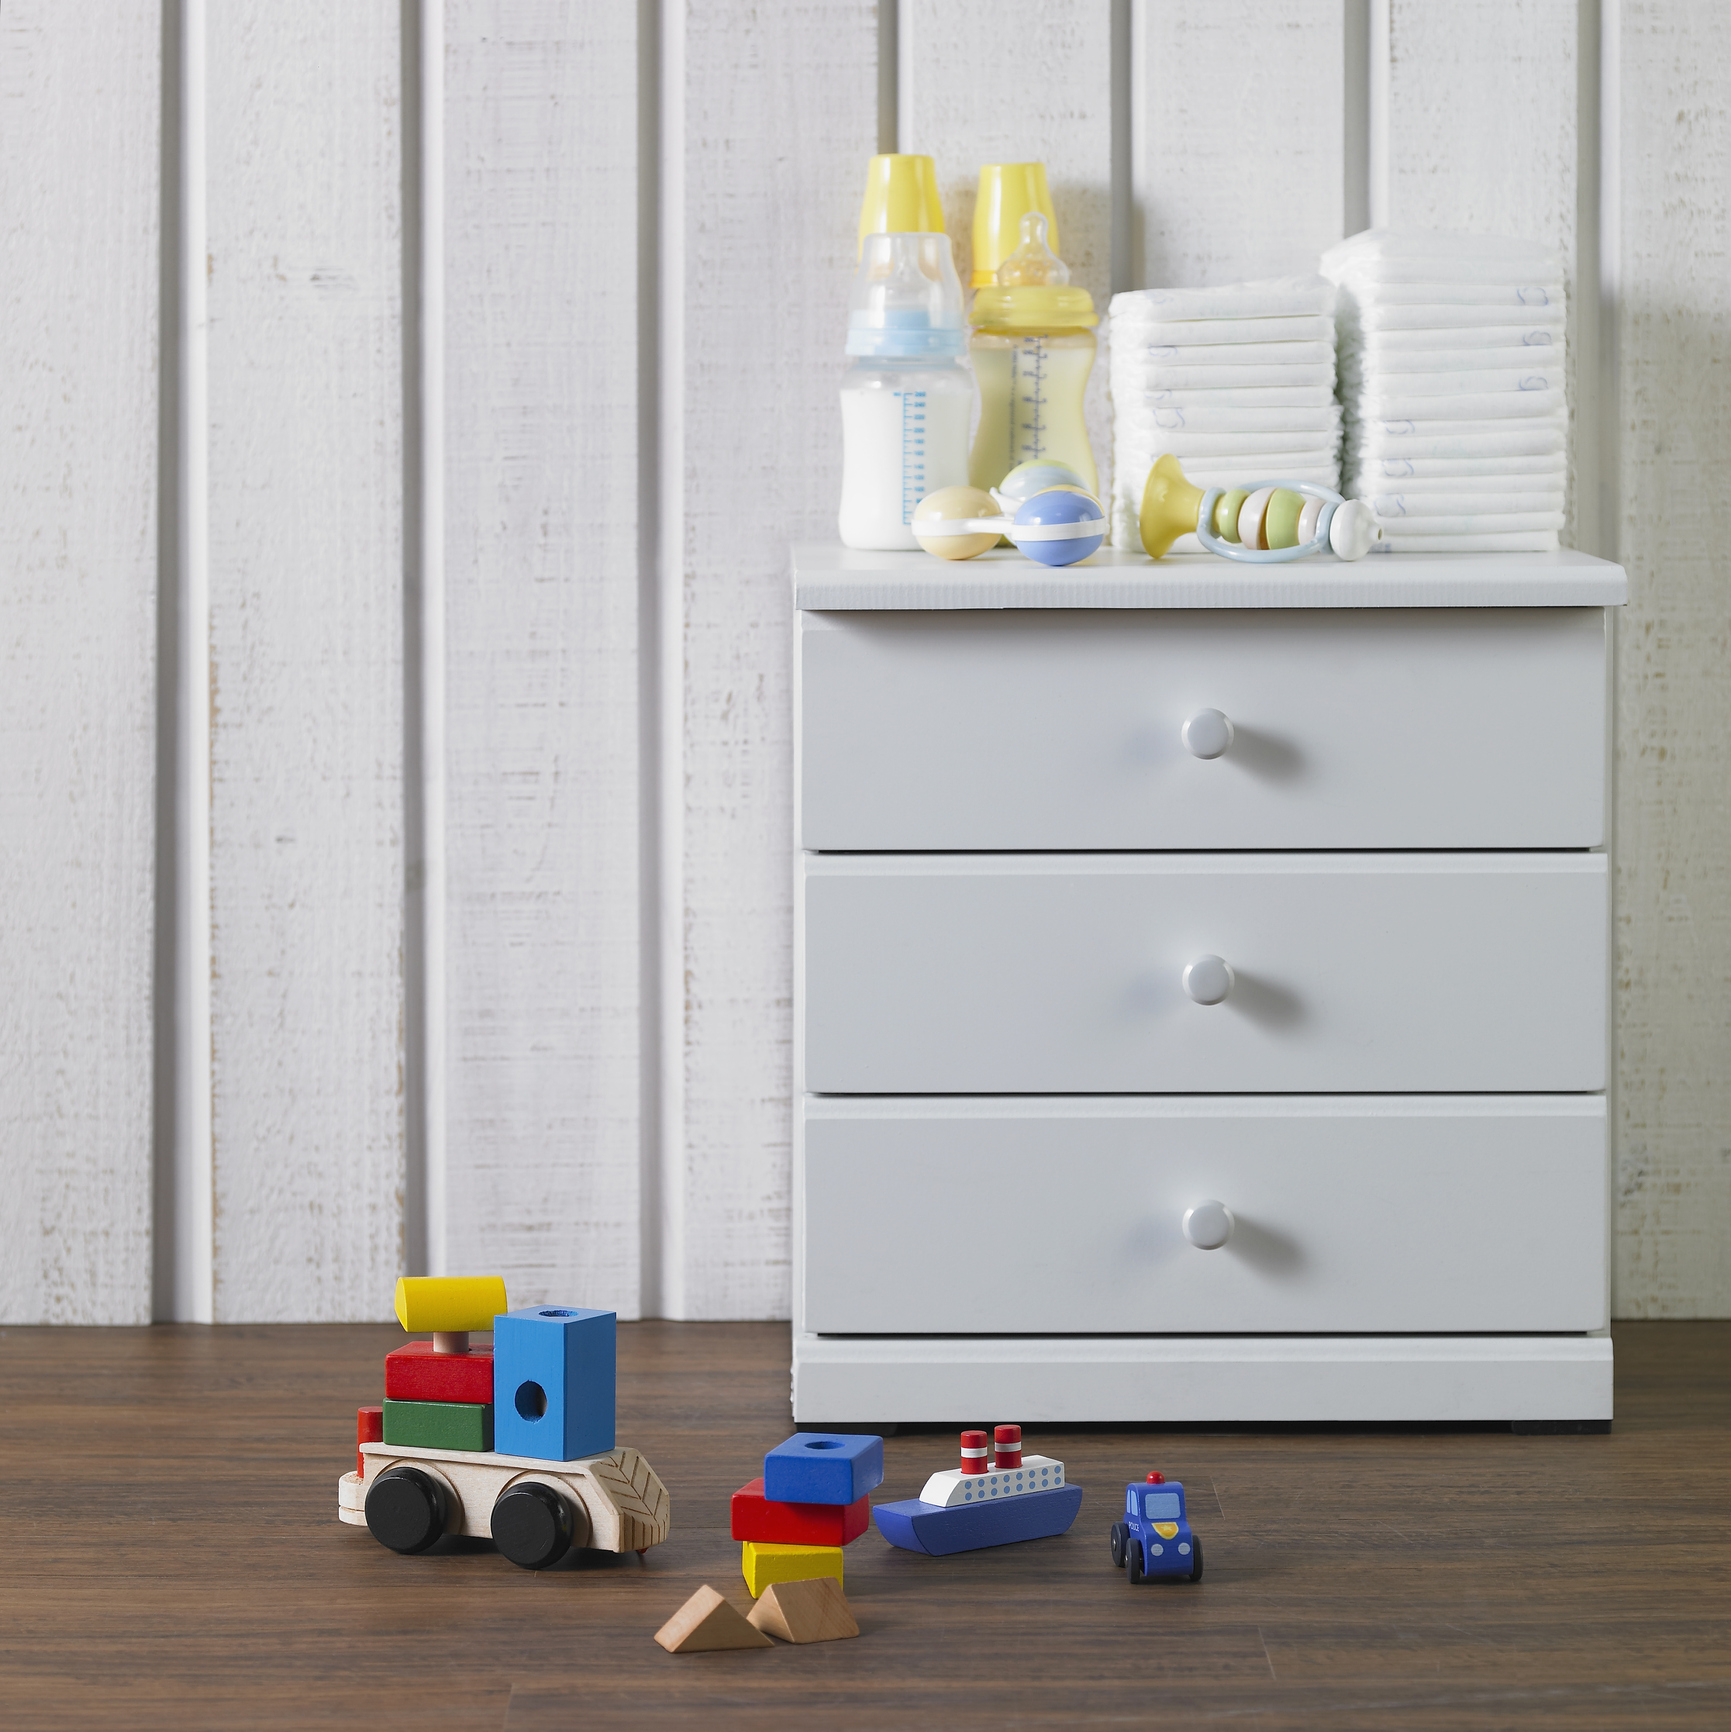 Baby's stuffs and a cabinet